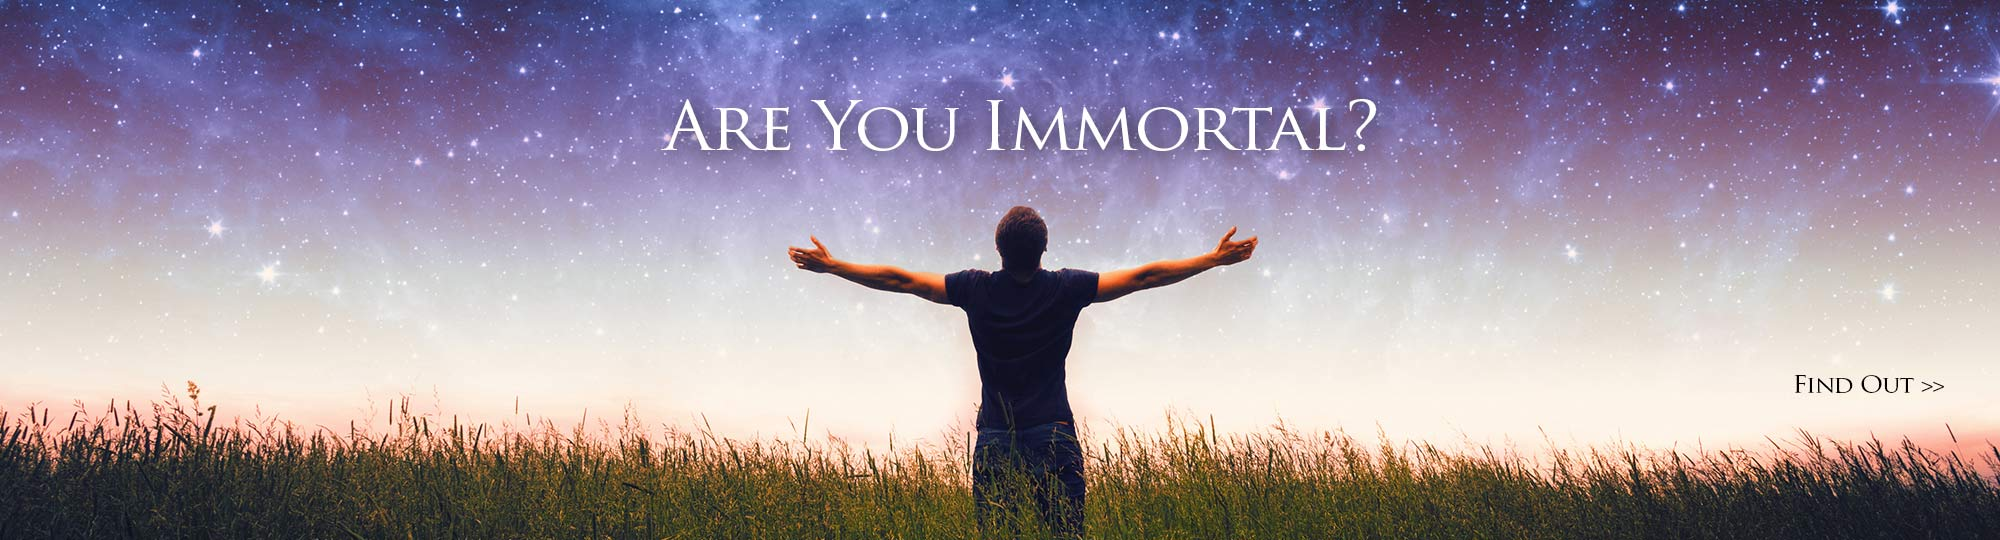 immortal; nephesh; death; heaven; do we go to heaven at death; do the dead live on